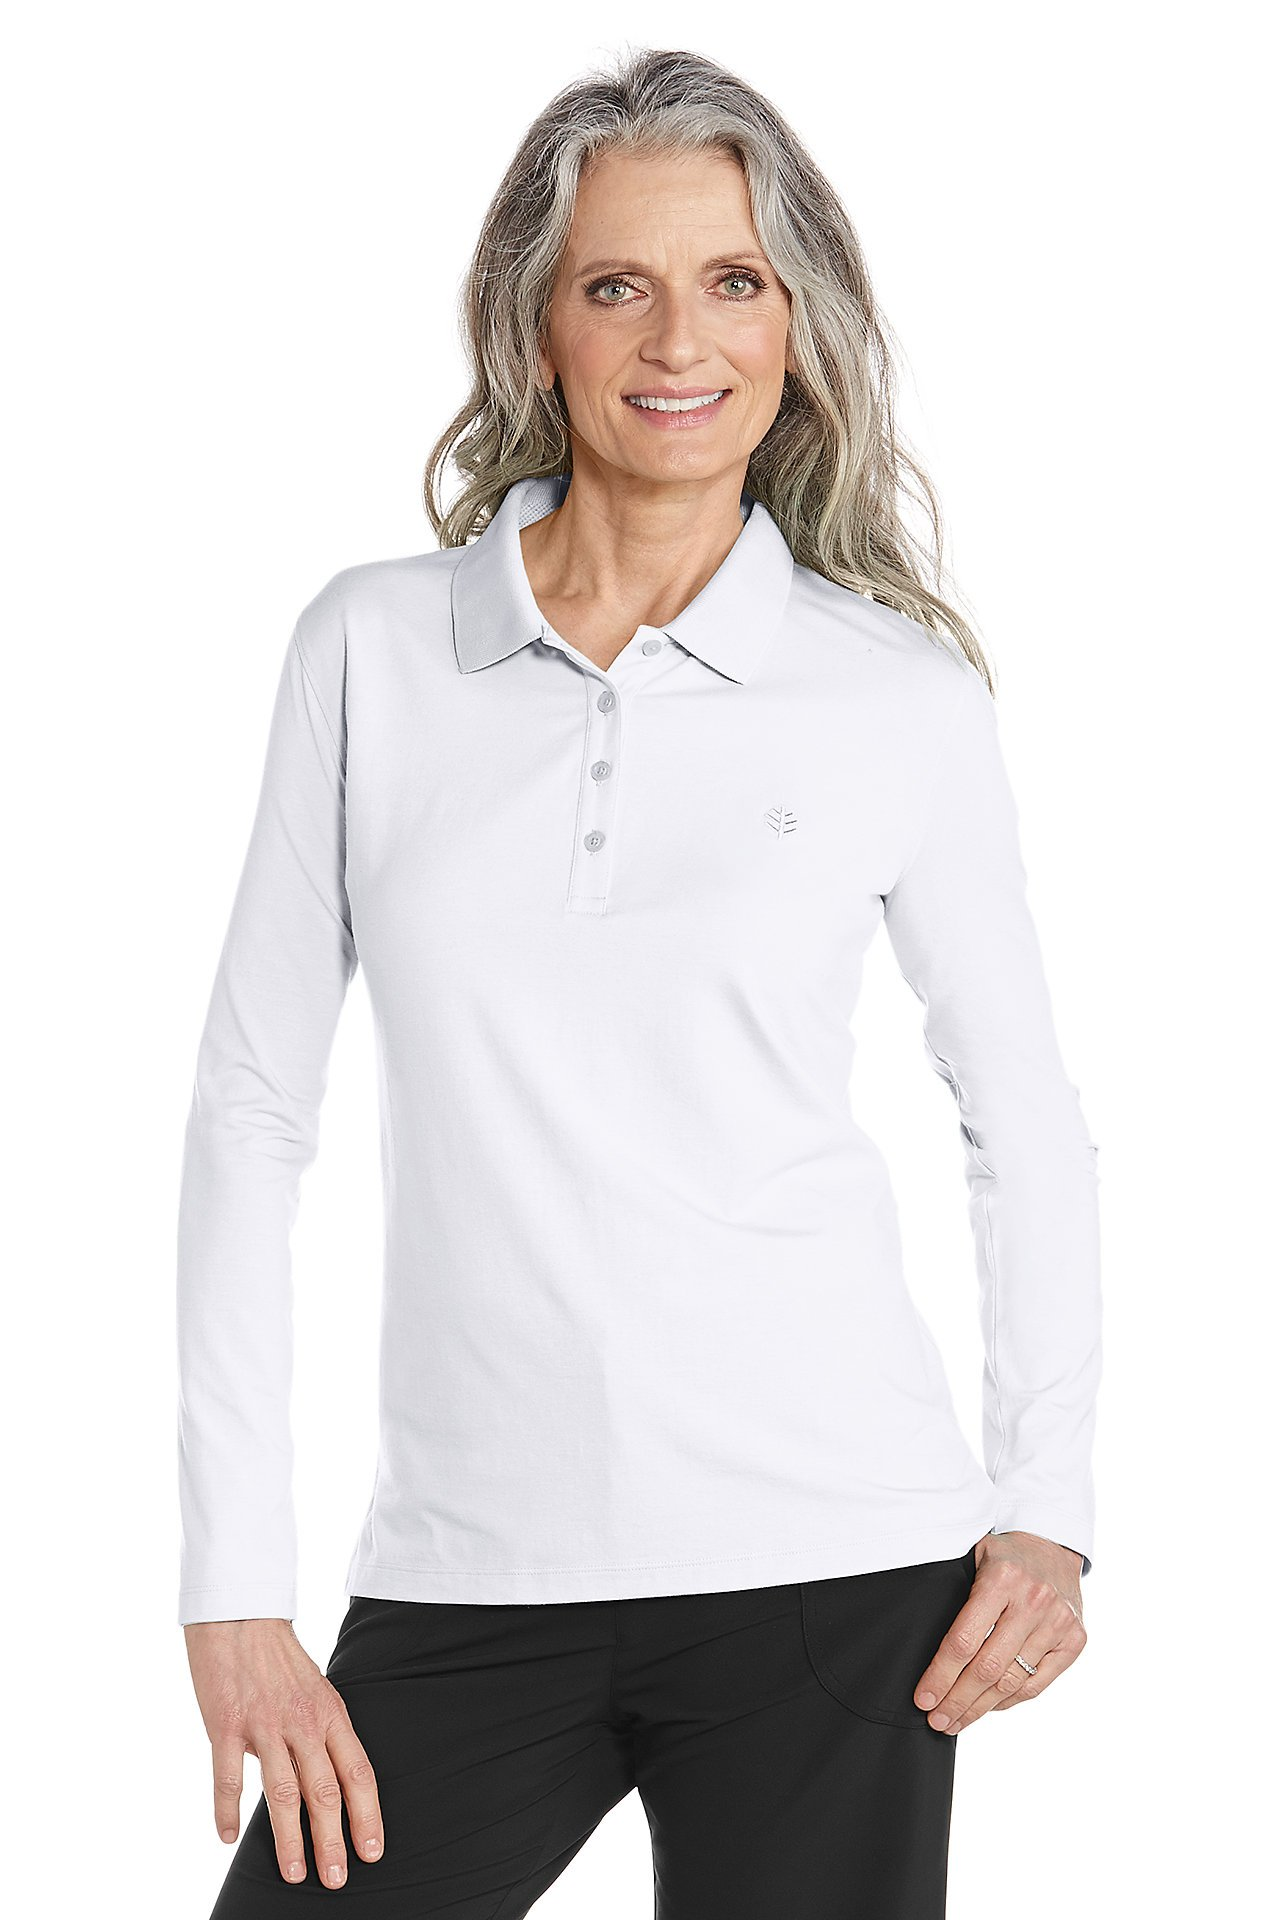 Coolibar UPF 50+ Women's Long Sleeve Polo Shirt - Sun Protective (2X - White)